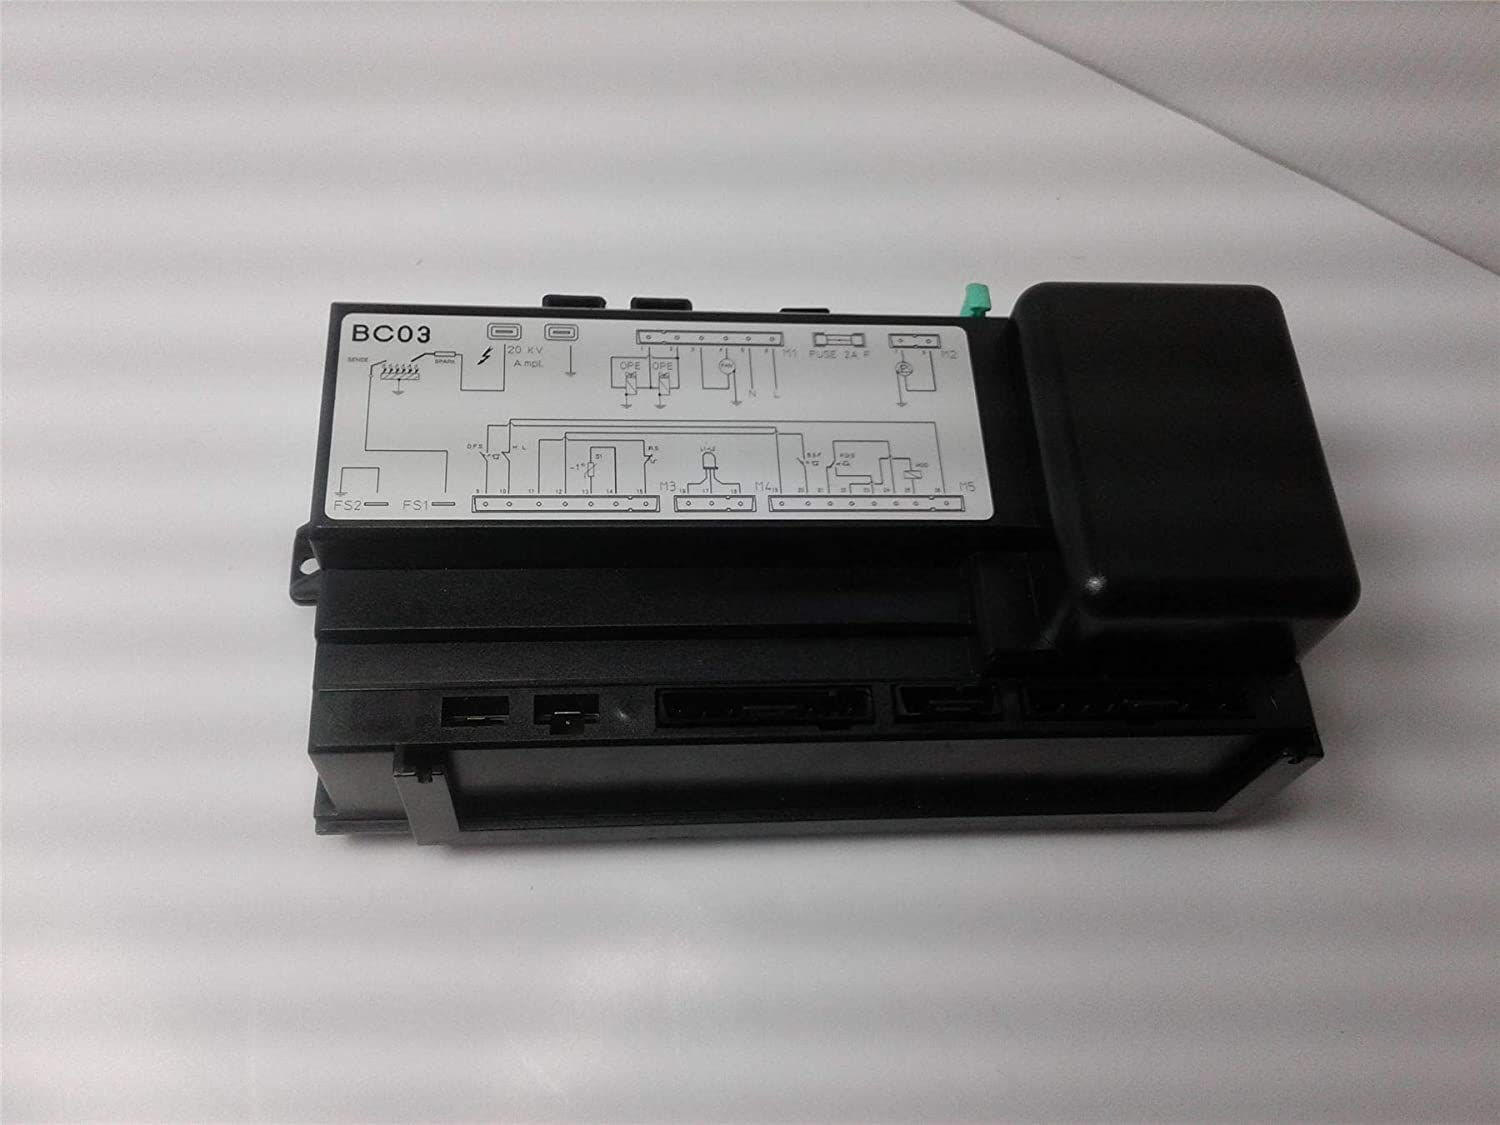 *NEW* Vokera Excell 80E /& 96E ignition control PCB 7097 12 months warranty Same day dispatch up to 4pm Monday to Friday.